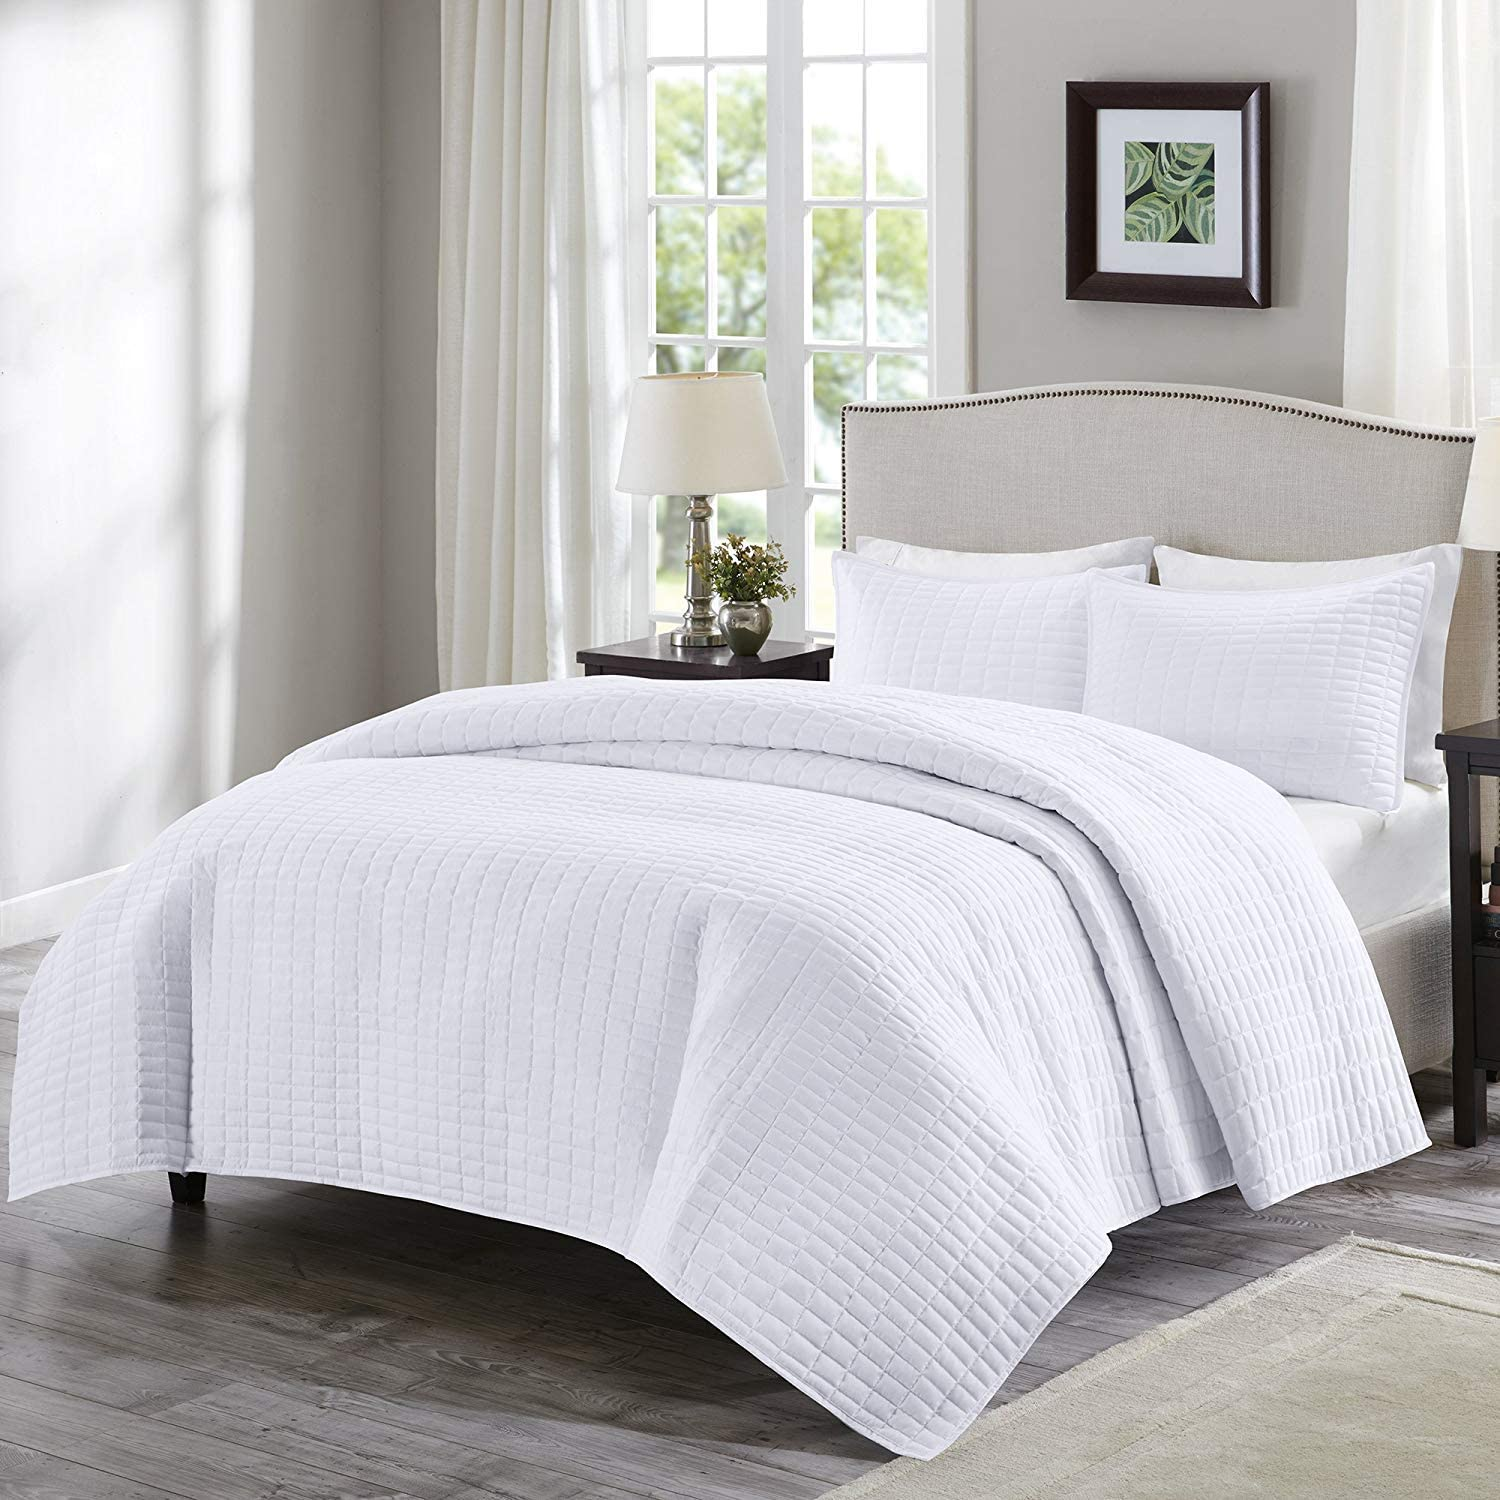 Comfort Spaces Kienna 2 Piece Quilt Coverlet Bedspread Ultra Soft Hypoallergenic Microfiber Stitched Bedding Set, Twin/Twin XL, White